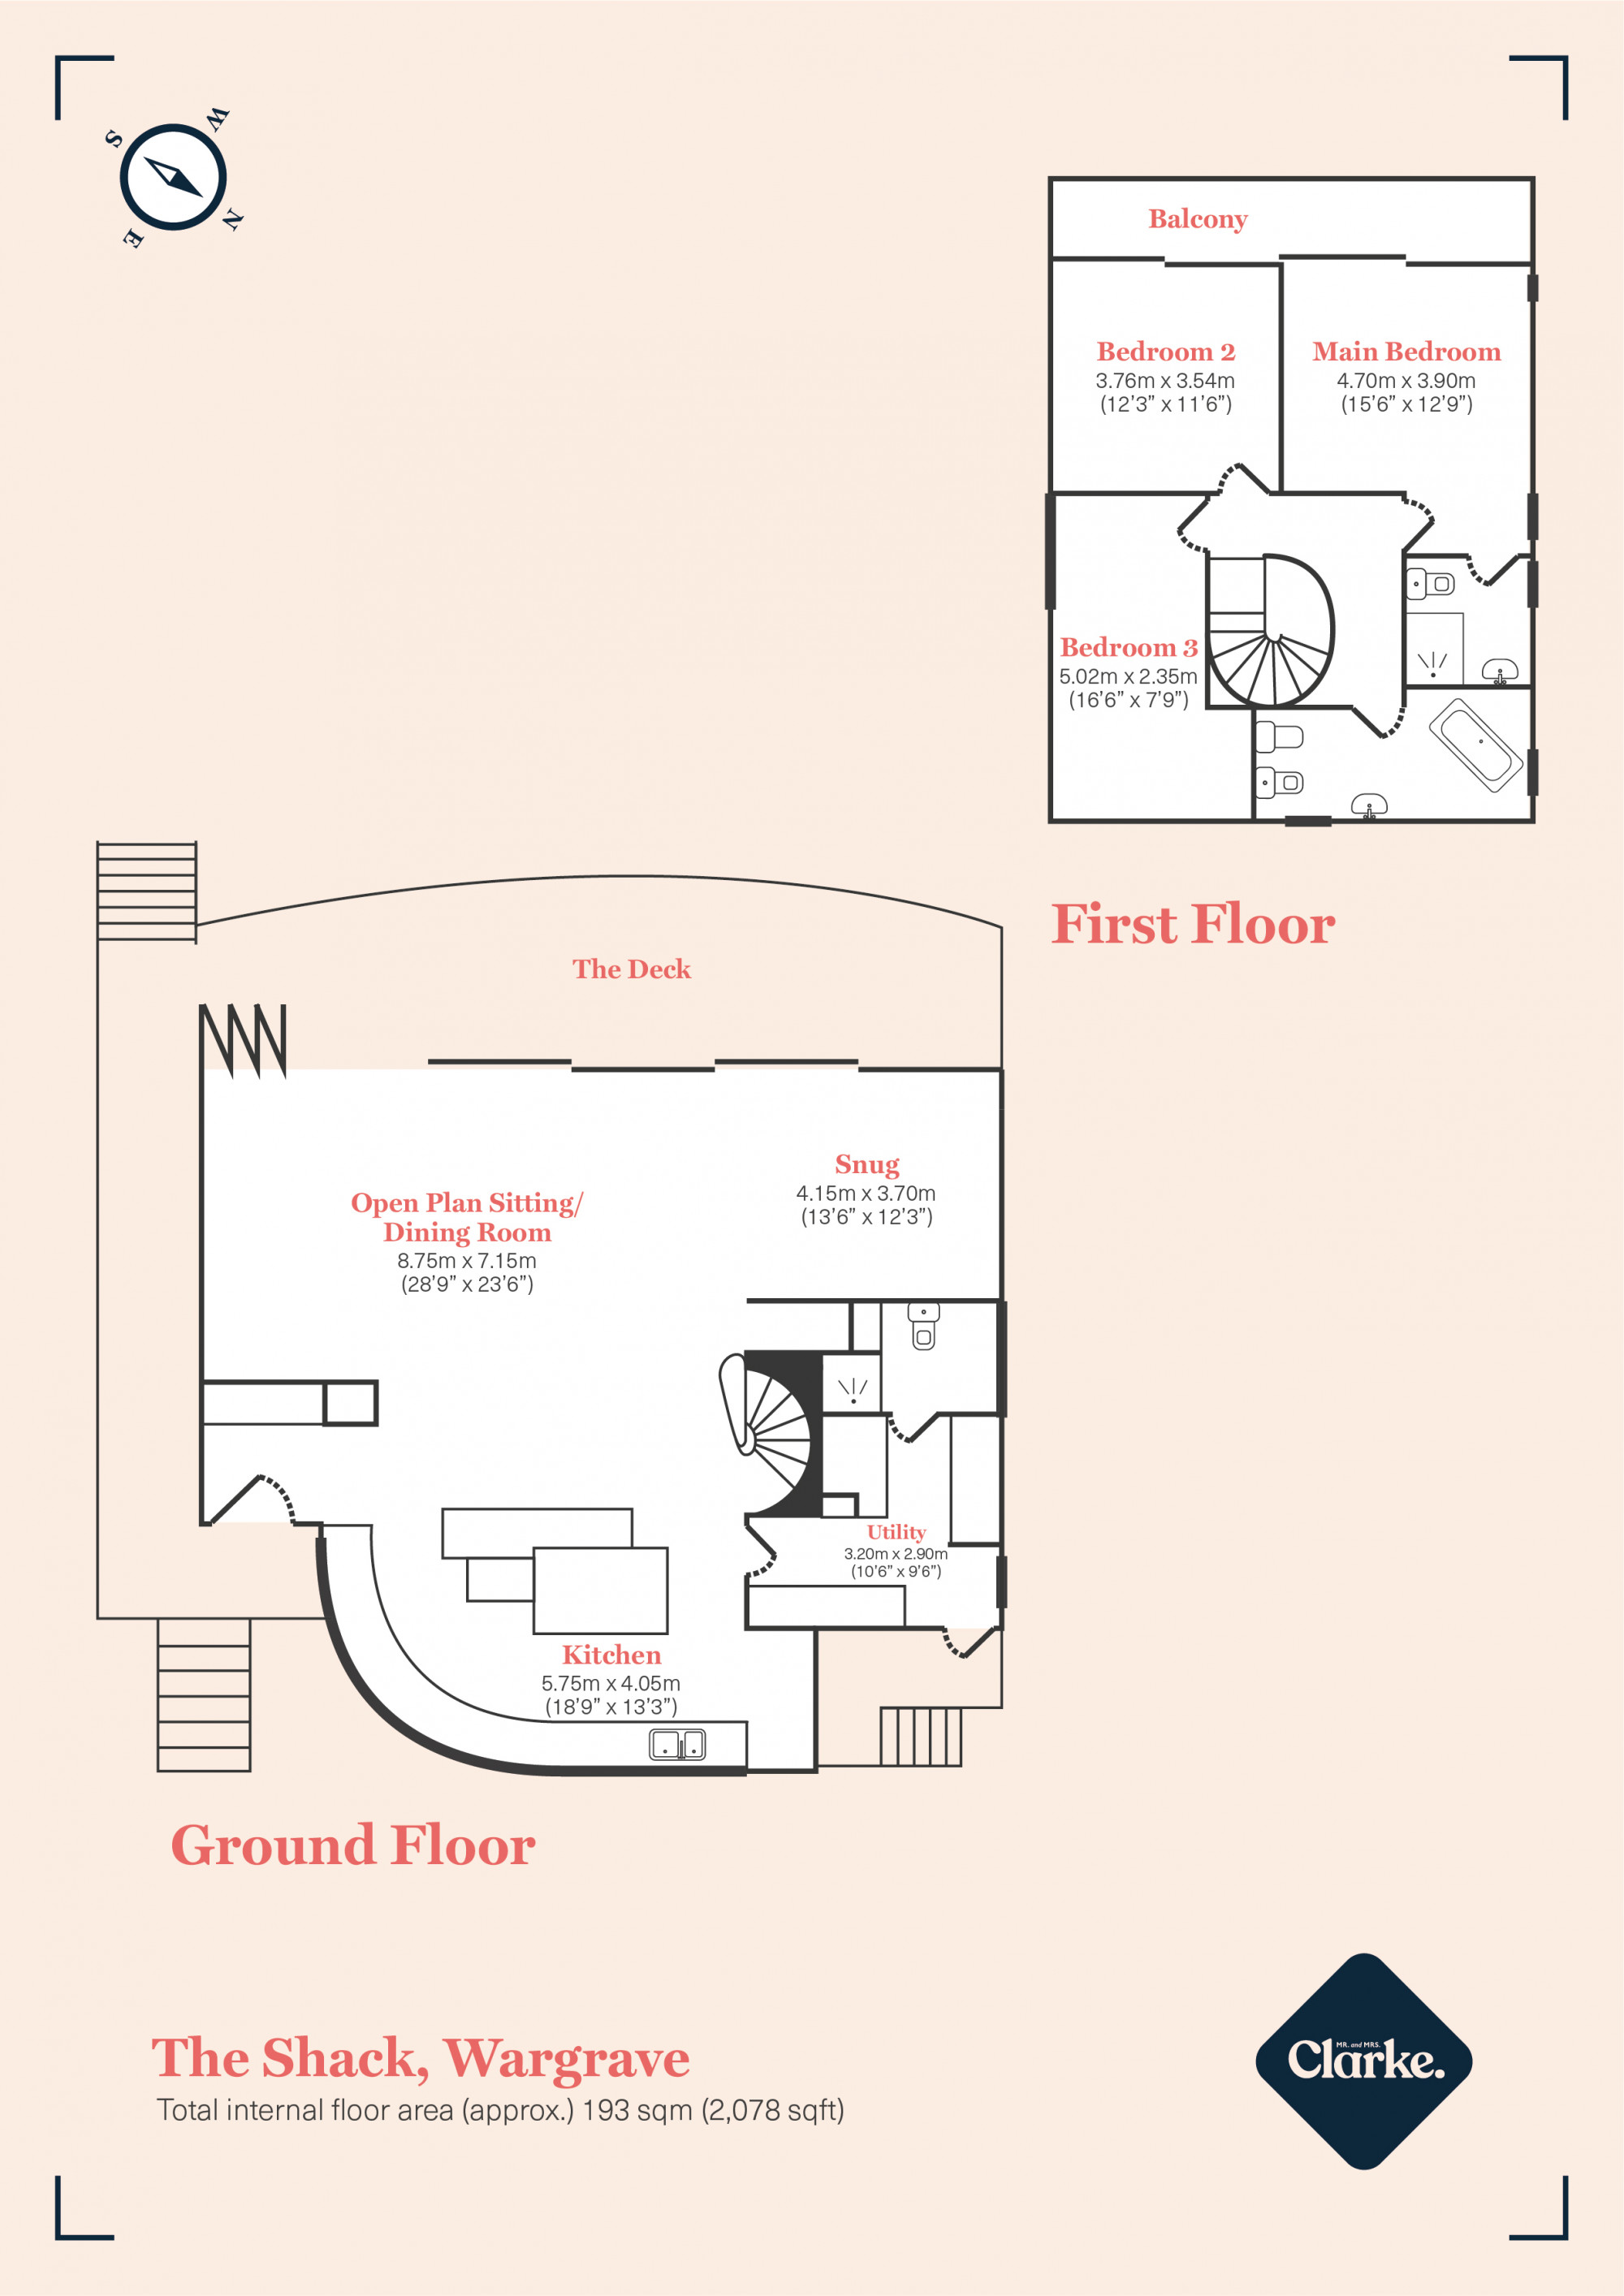 The Shack, Wargrave. Floorplan.